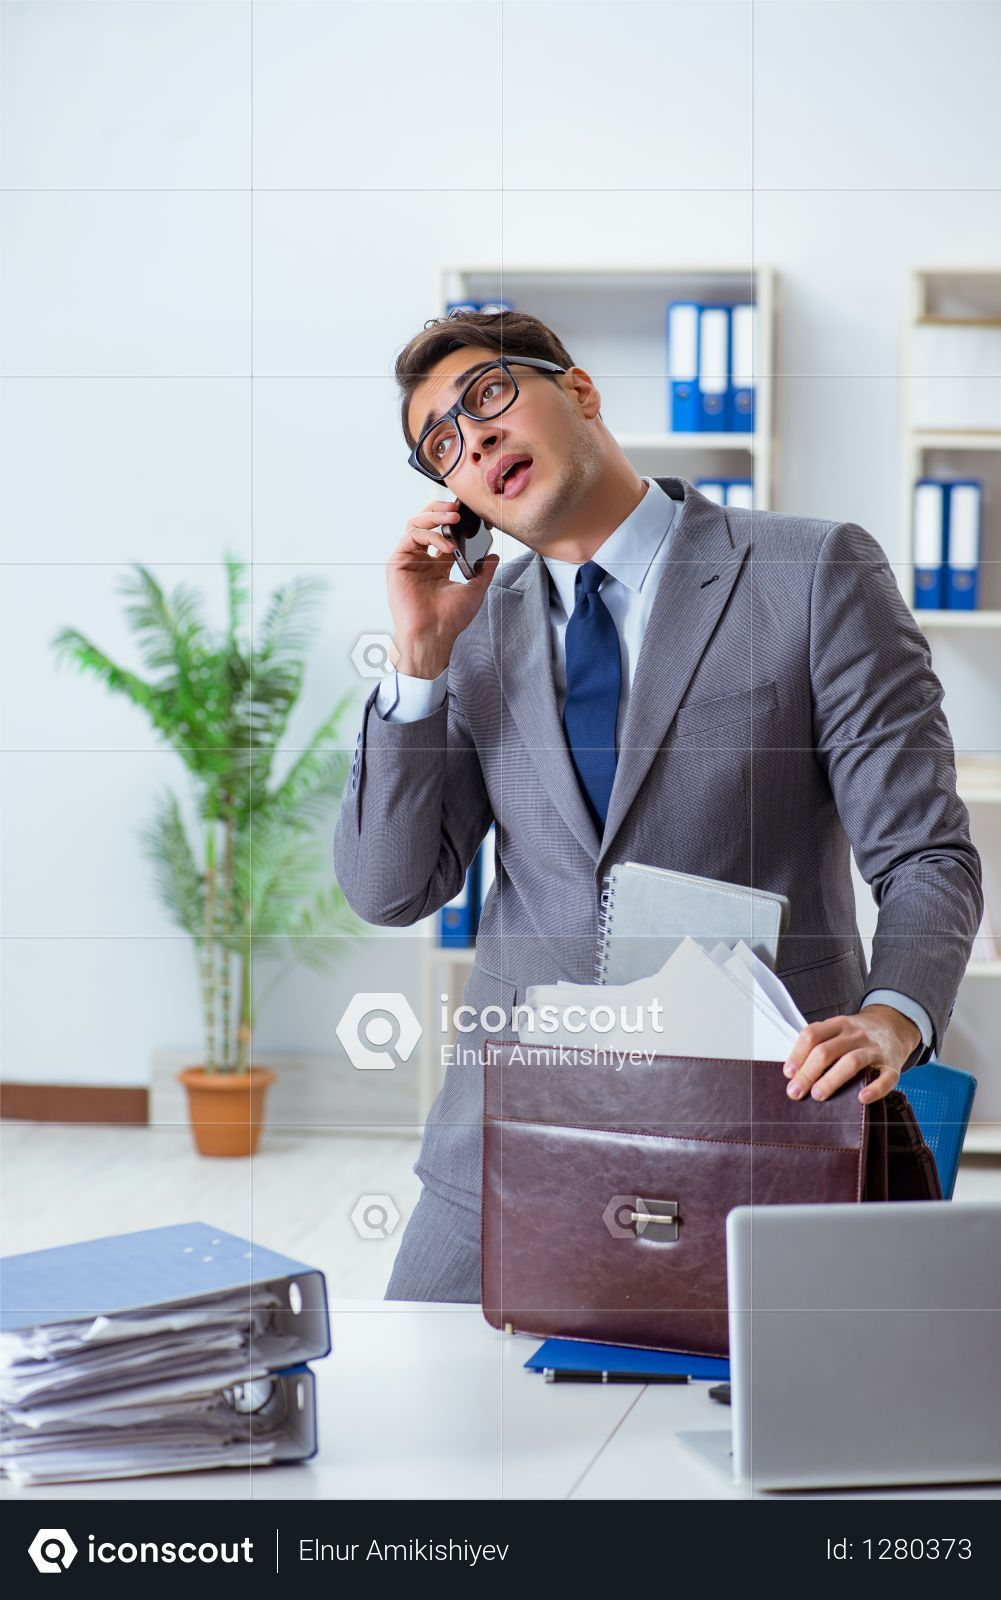 Premium Employee with too much work taking it home Photo